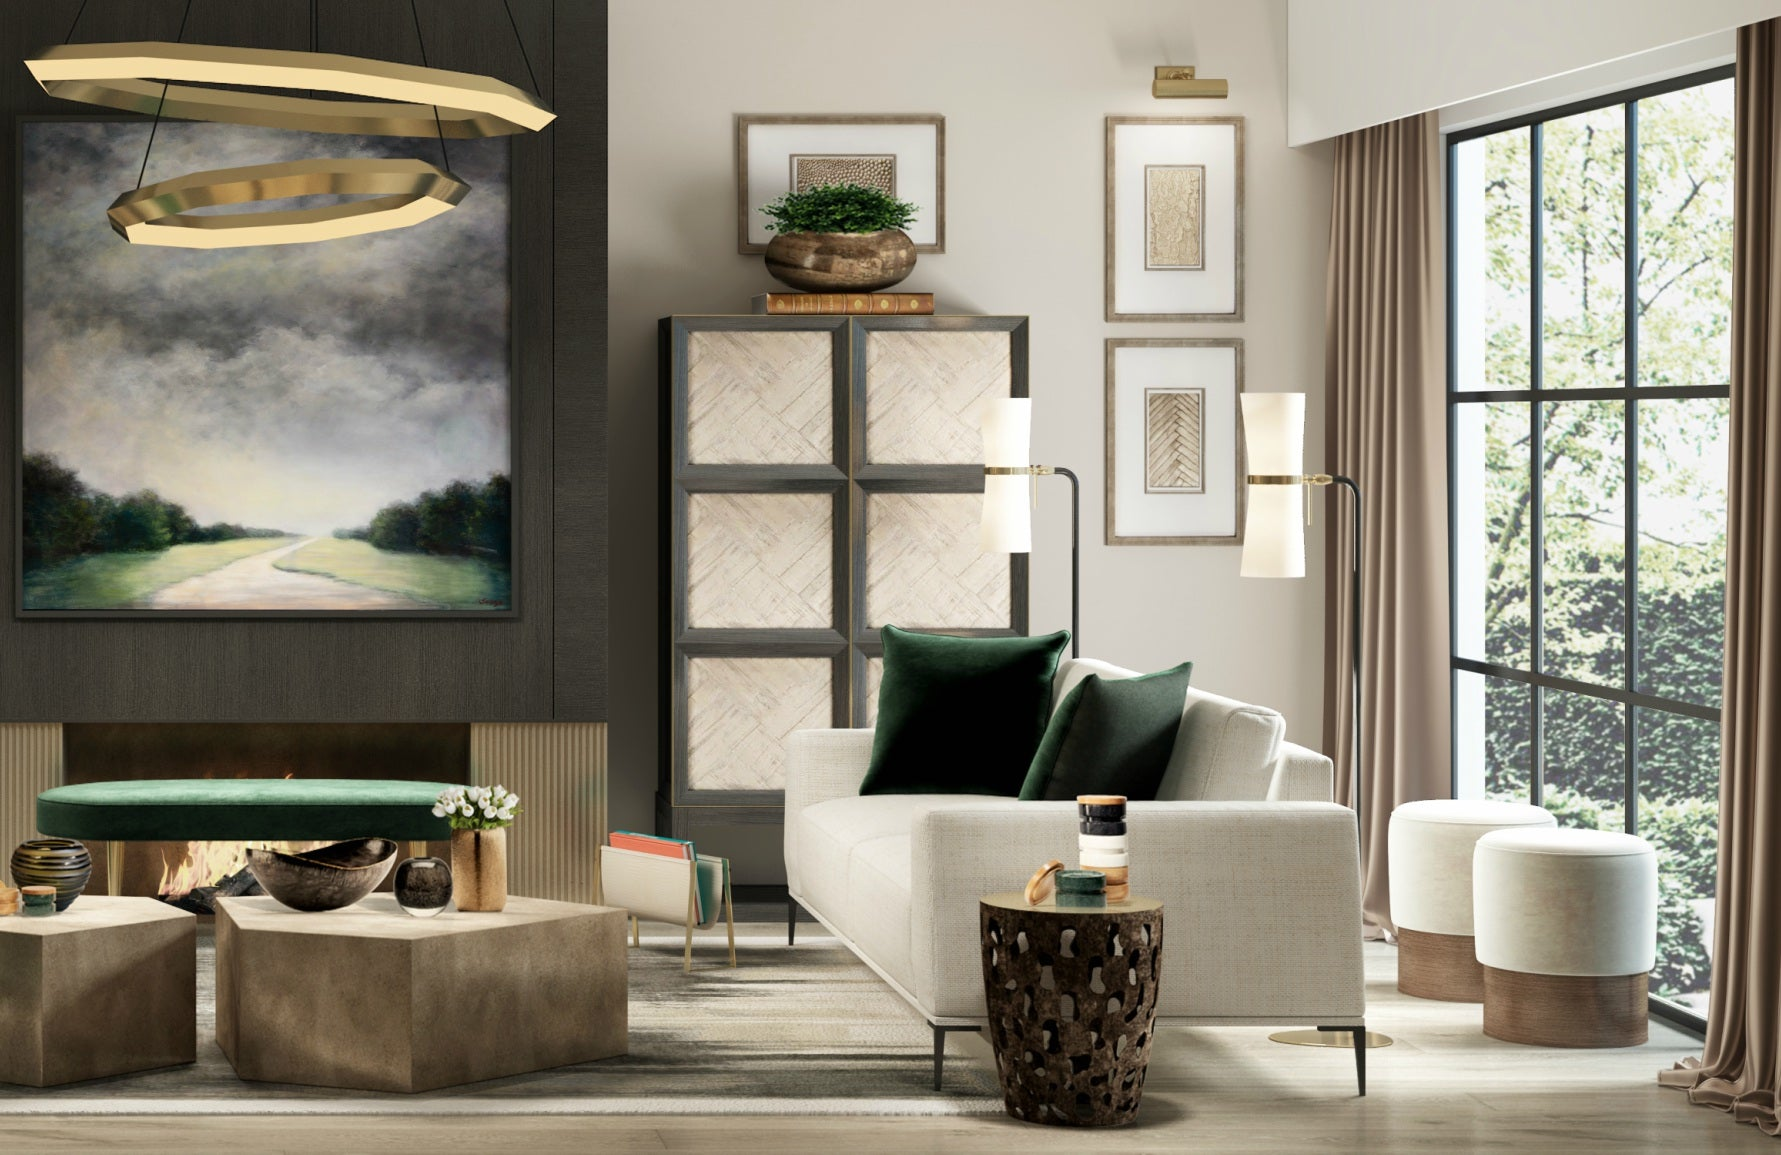 Neutral Living Room Style | Luxury Interior Design | Shop our Wimbledon Collection at LuxDeco.com